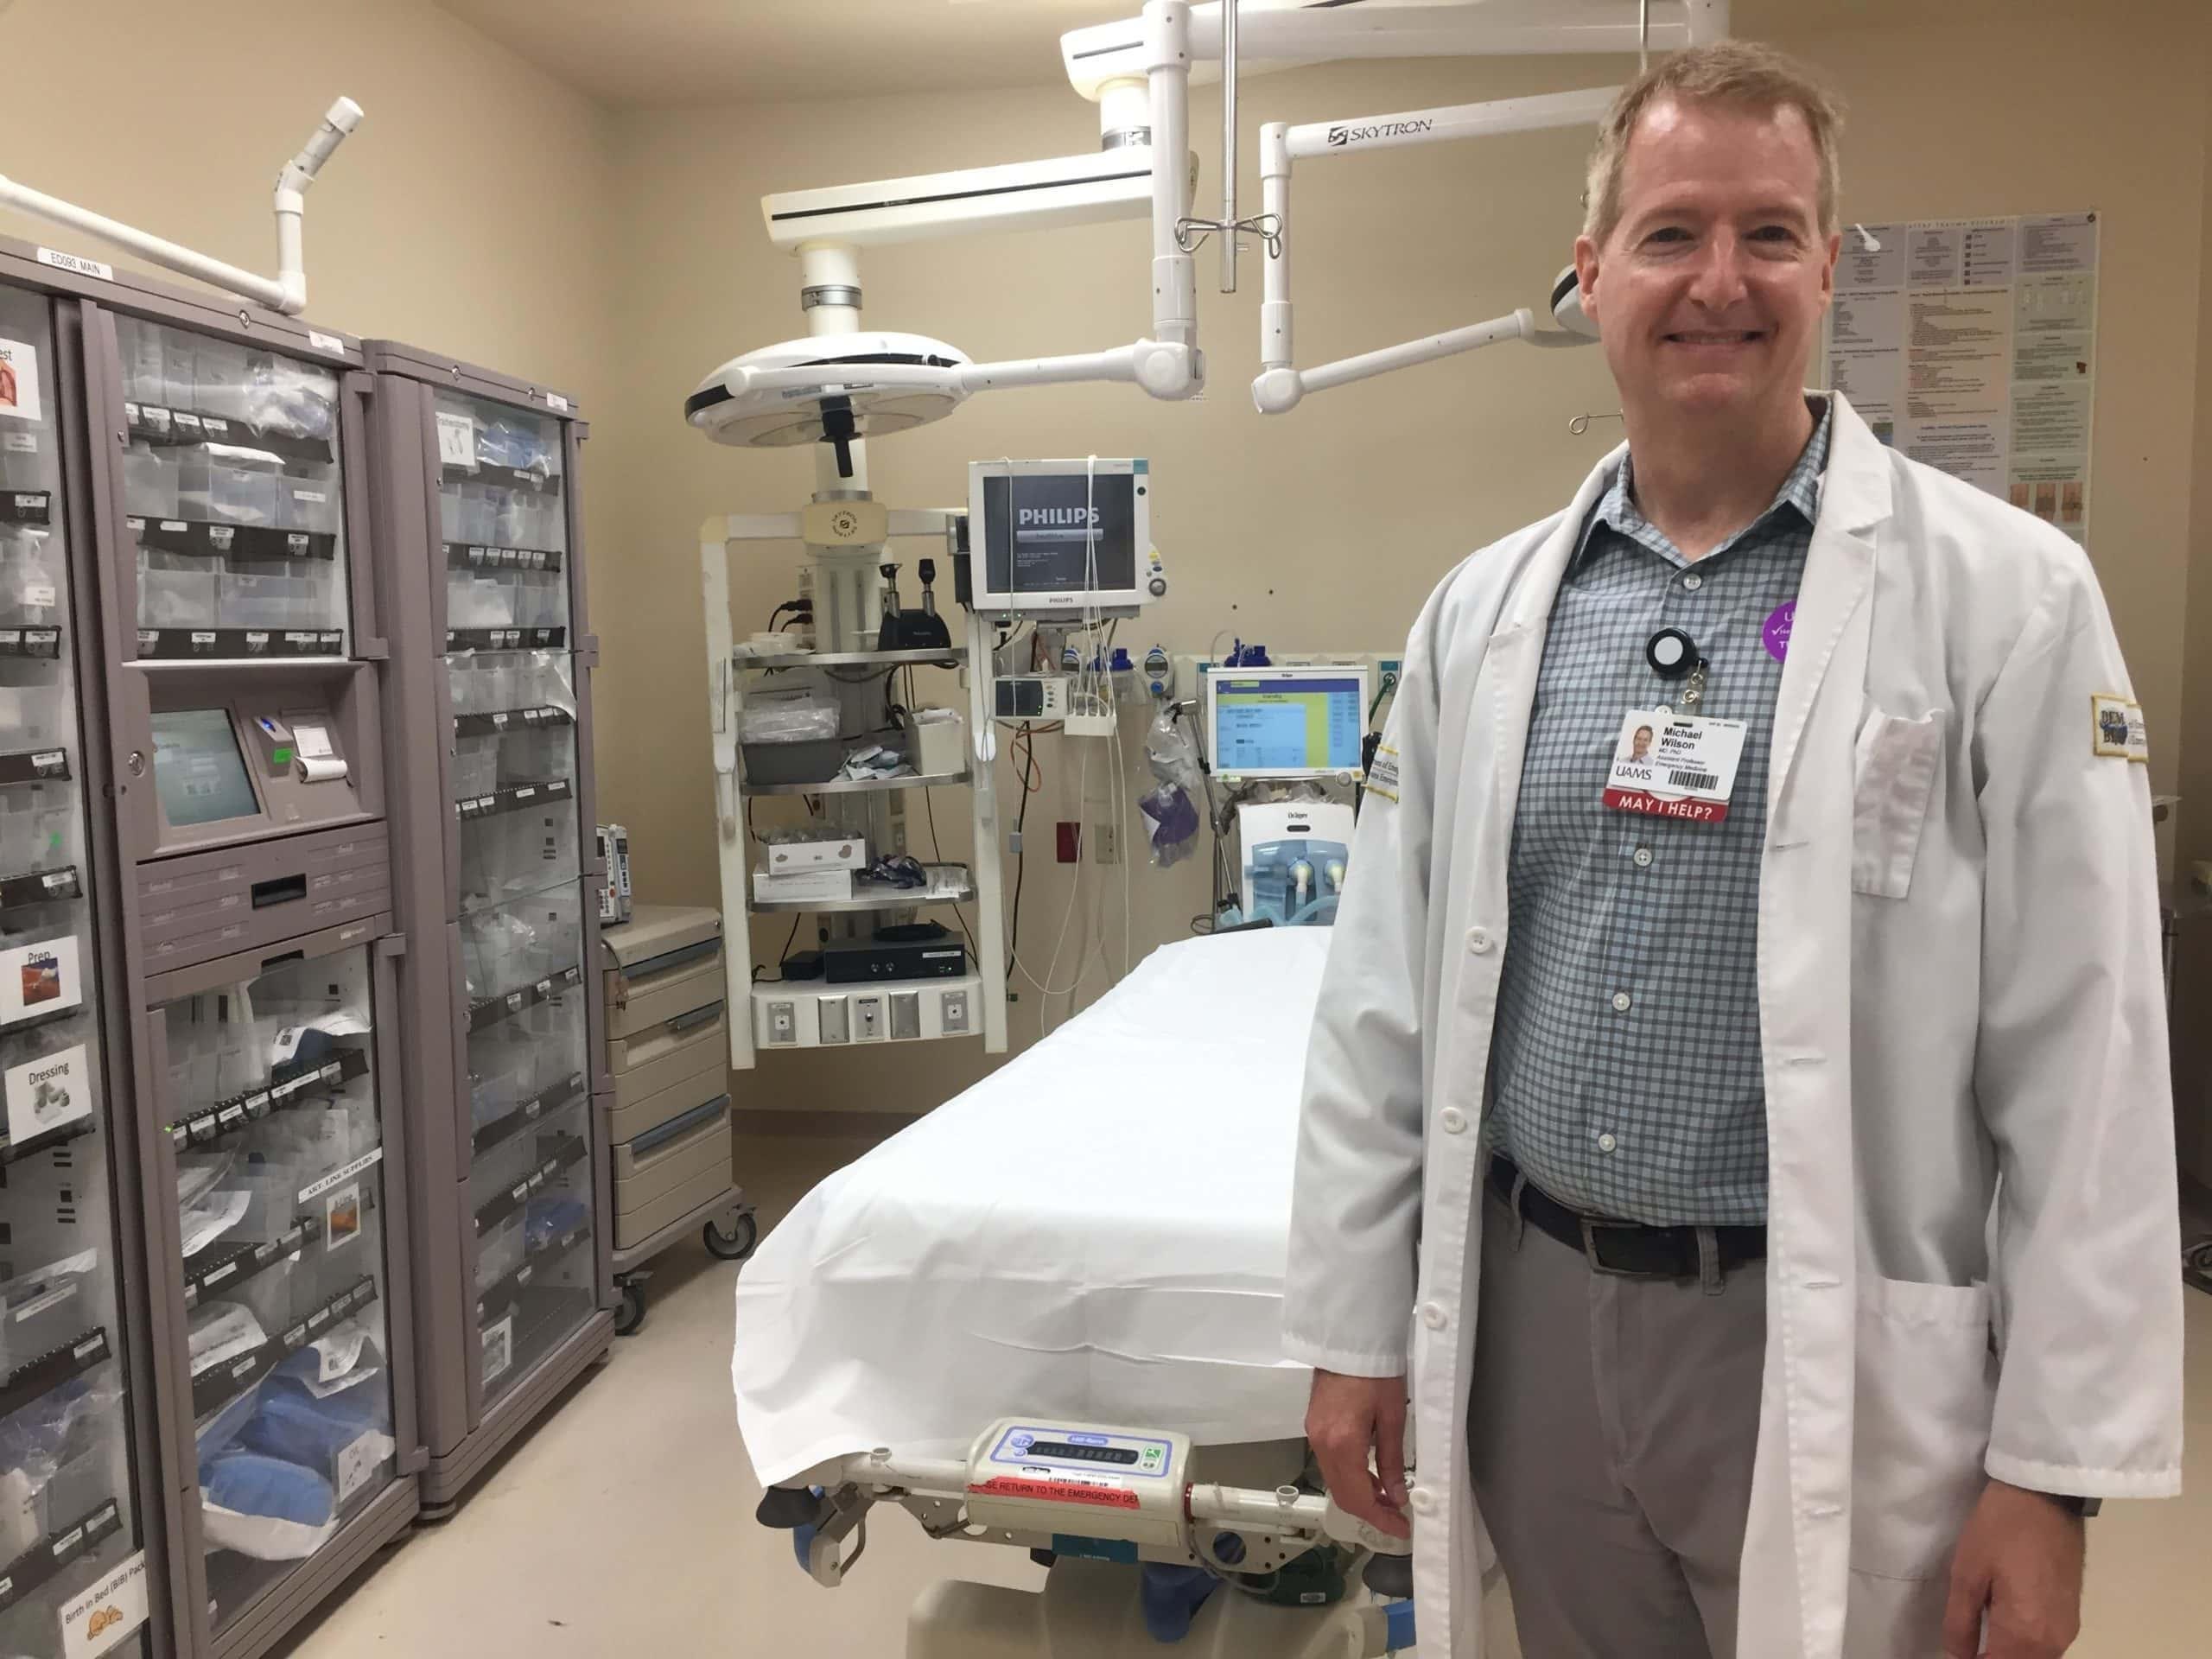 Michael Wilson, M.D., an assistant professor of Emergency Medicine, is studying how methamphetamine affects the human body, particularly how the body responds to stress.